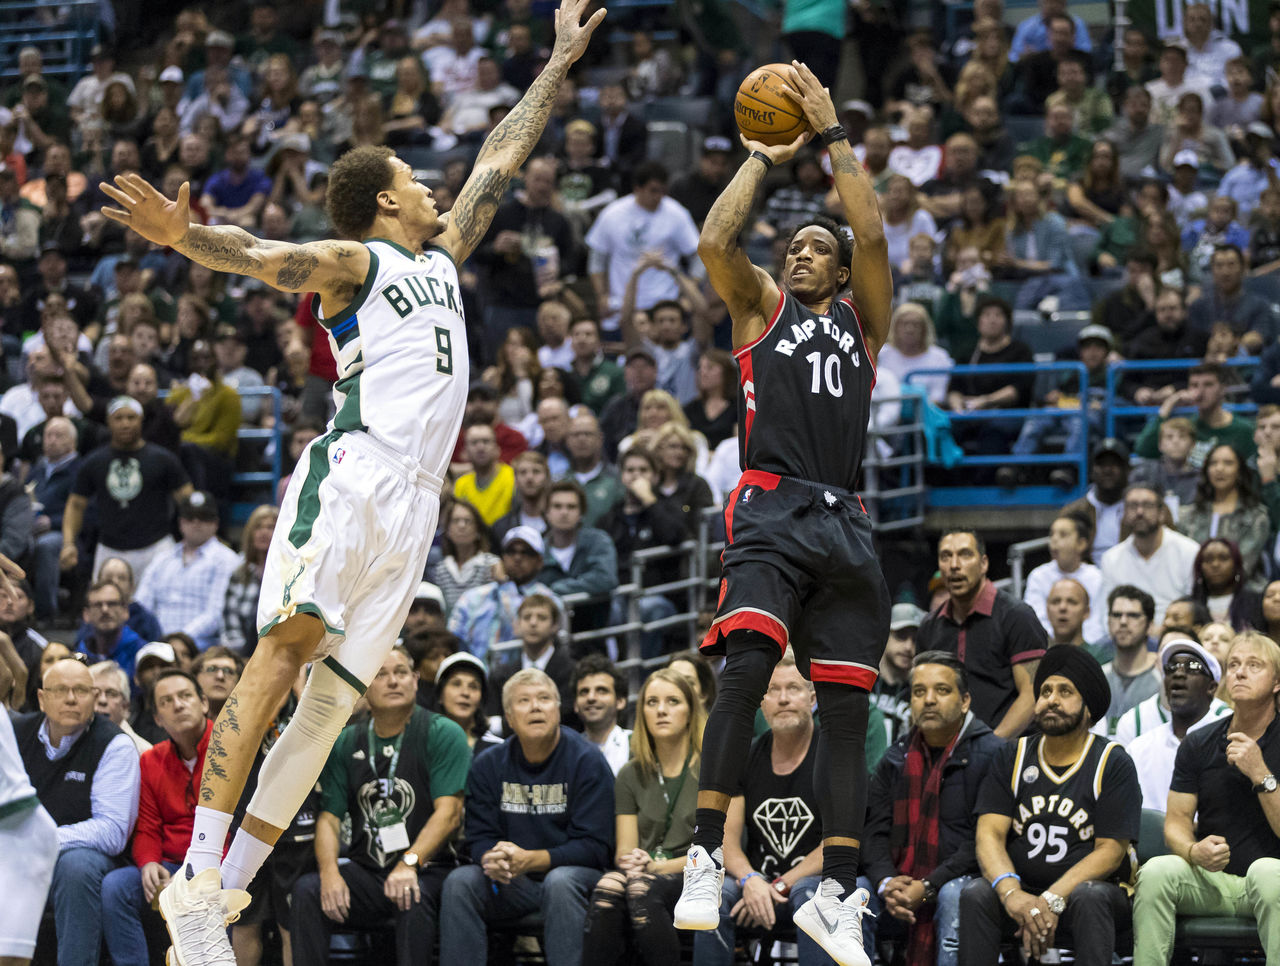 Cropped 2017 04 22t202450z 2024972261 nocid rtrmadp 3 nba playoffs toronto raptors at milwaukee bucks